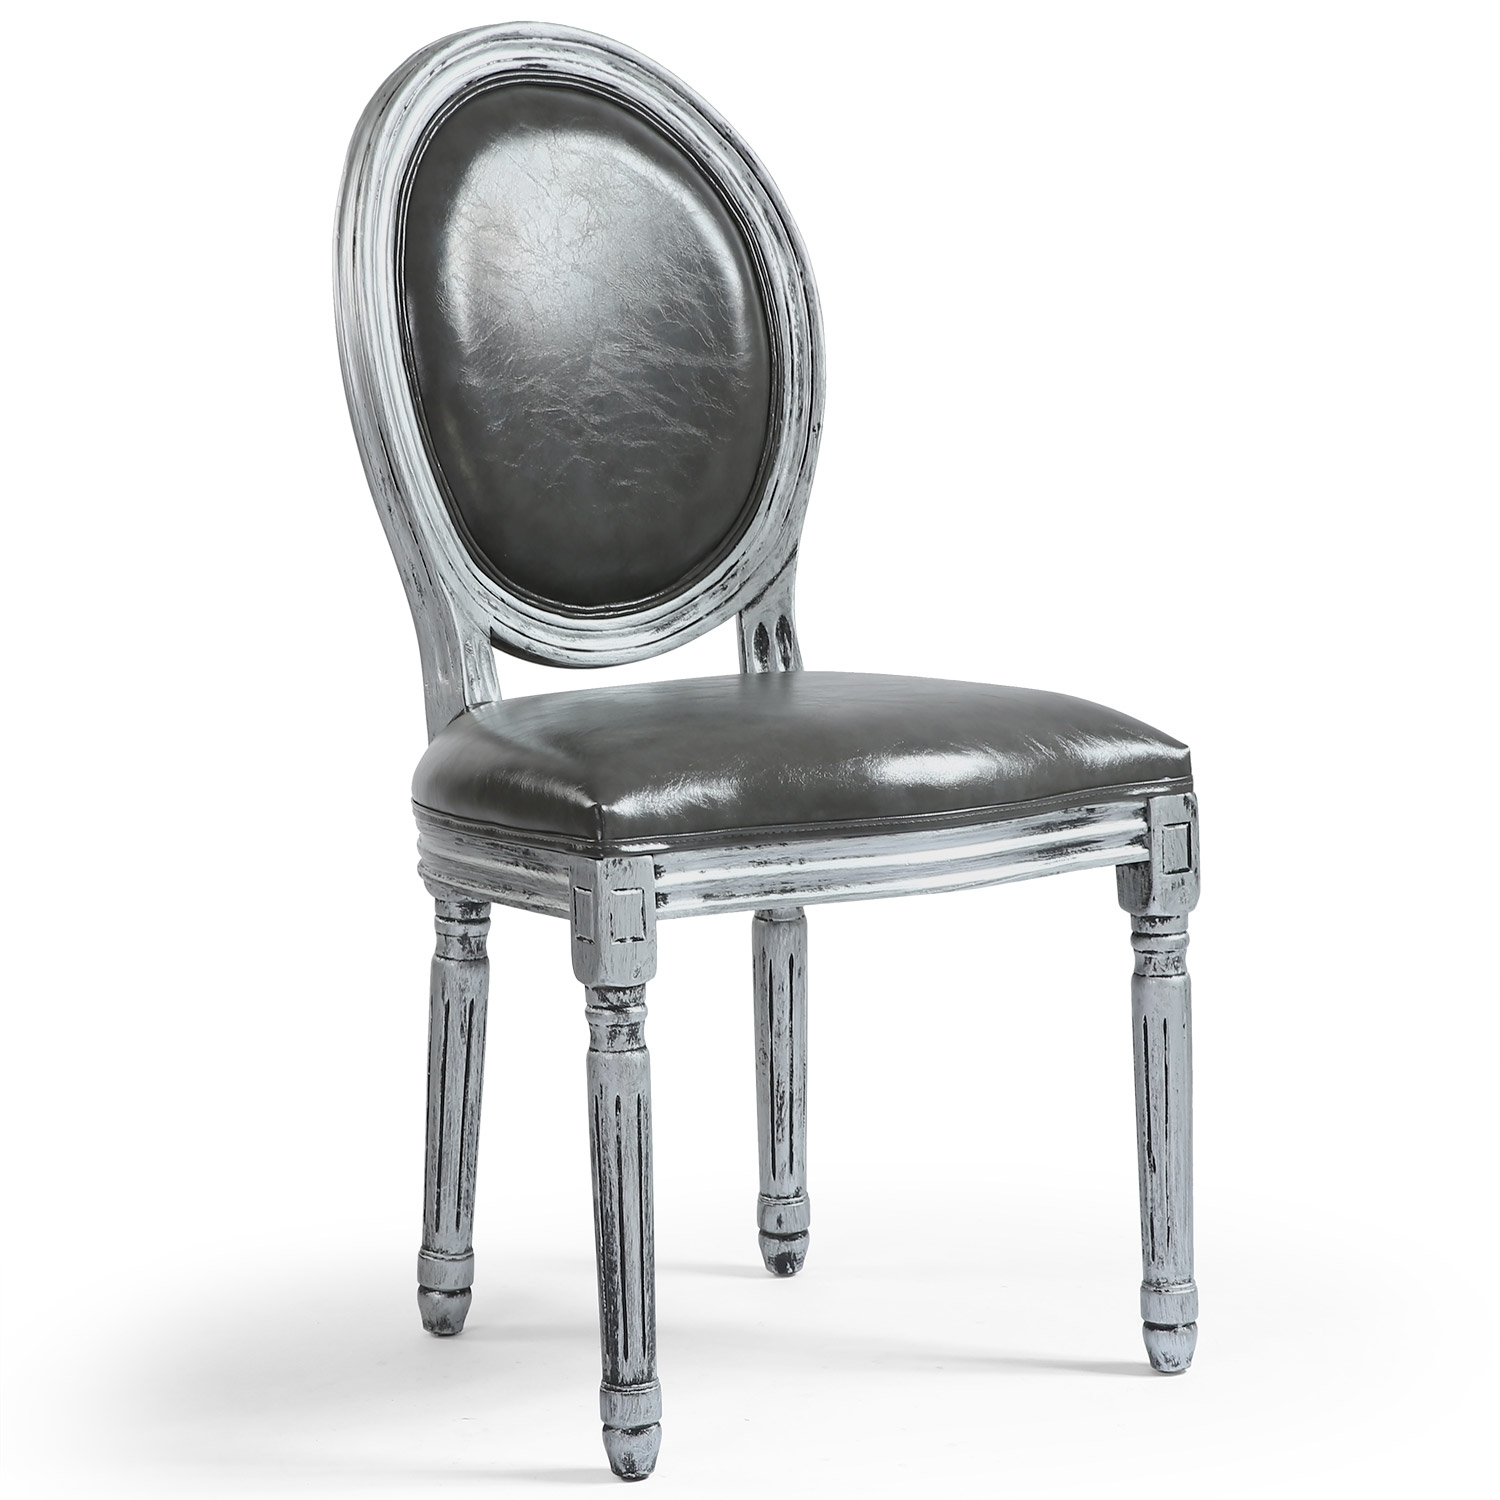 chaise m daillon bois patin argent et simili gris louis xvi lot de 2. Black Bedroom Furniture Sets. Home Design Ideas